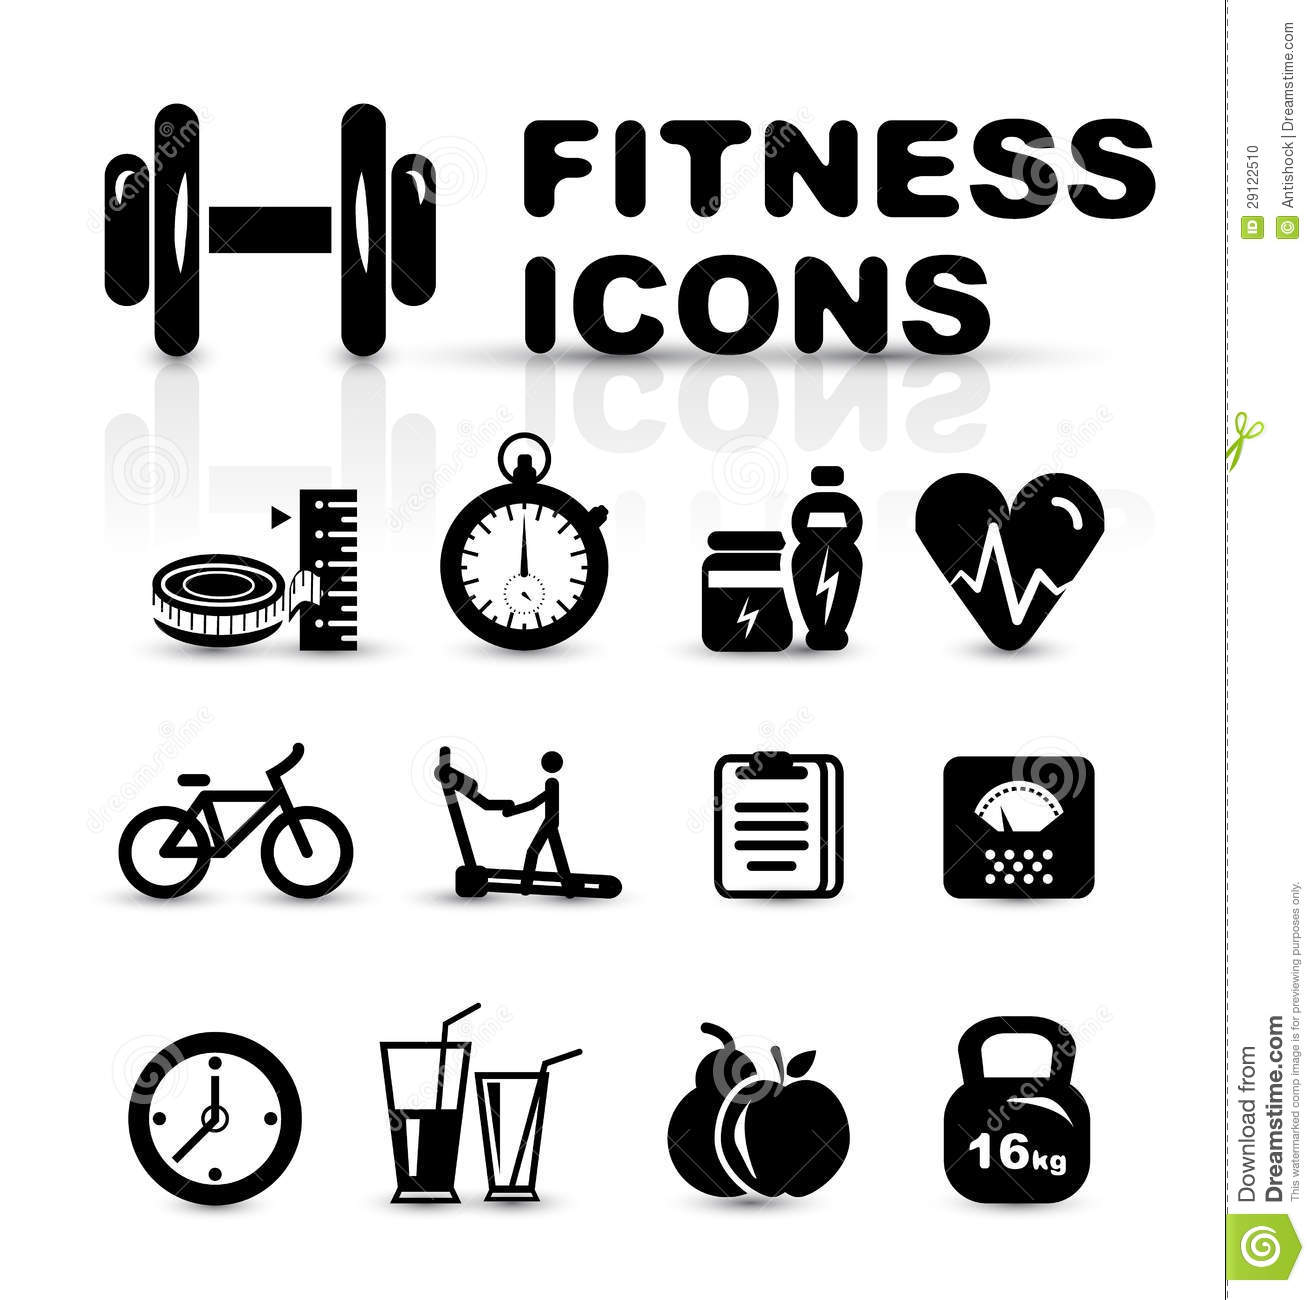 Scale Balance Gym Equipment Icon Vector Illustration